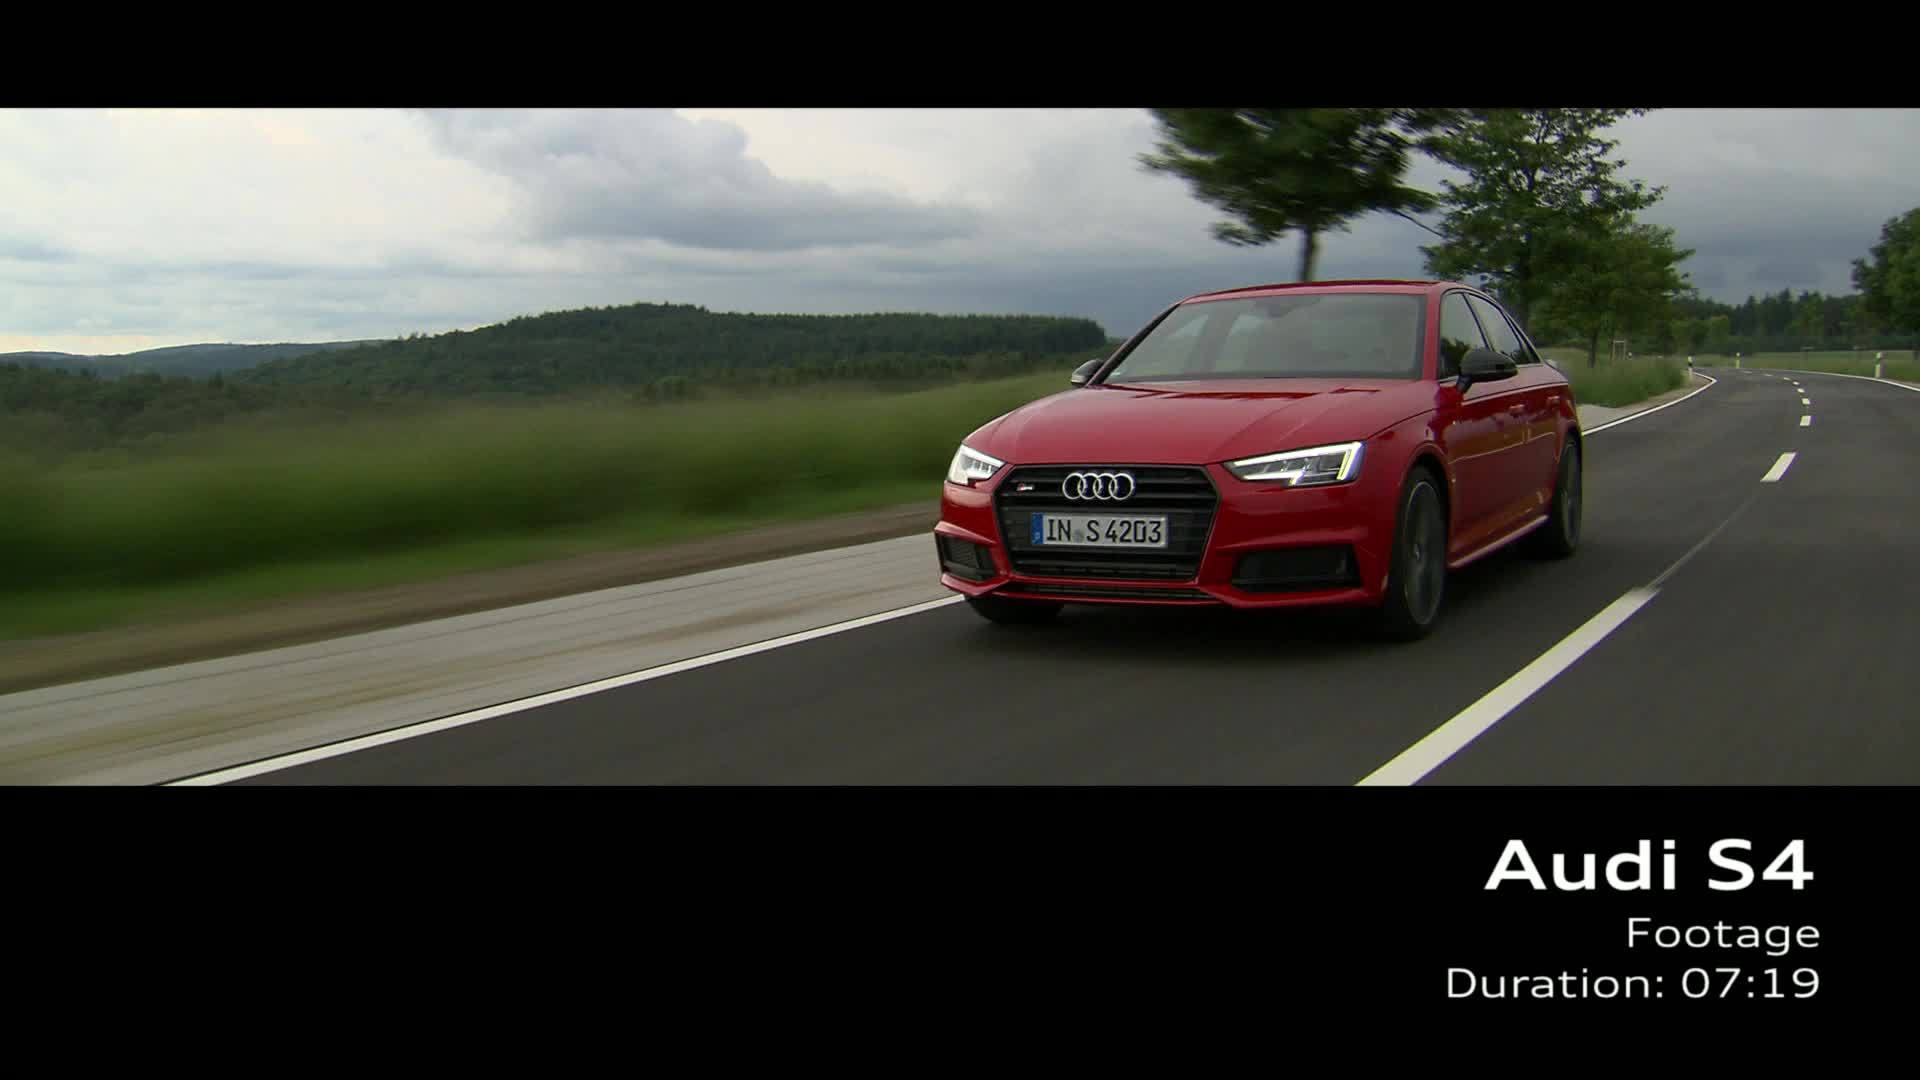 Audi S4 Limousine - Footage on Location